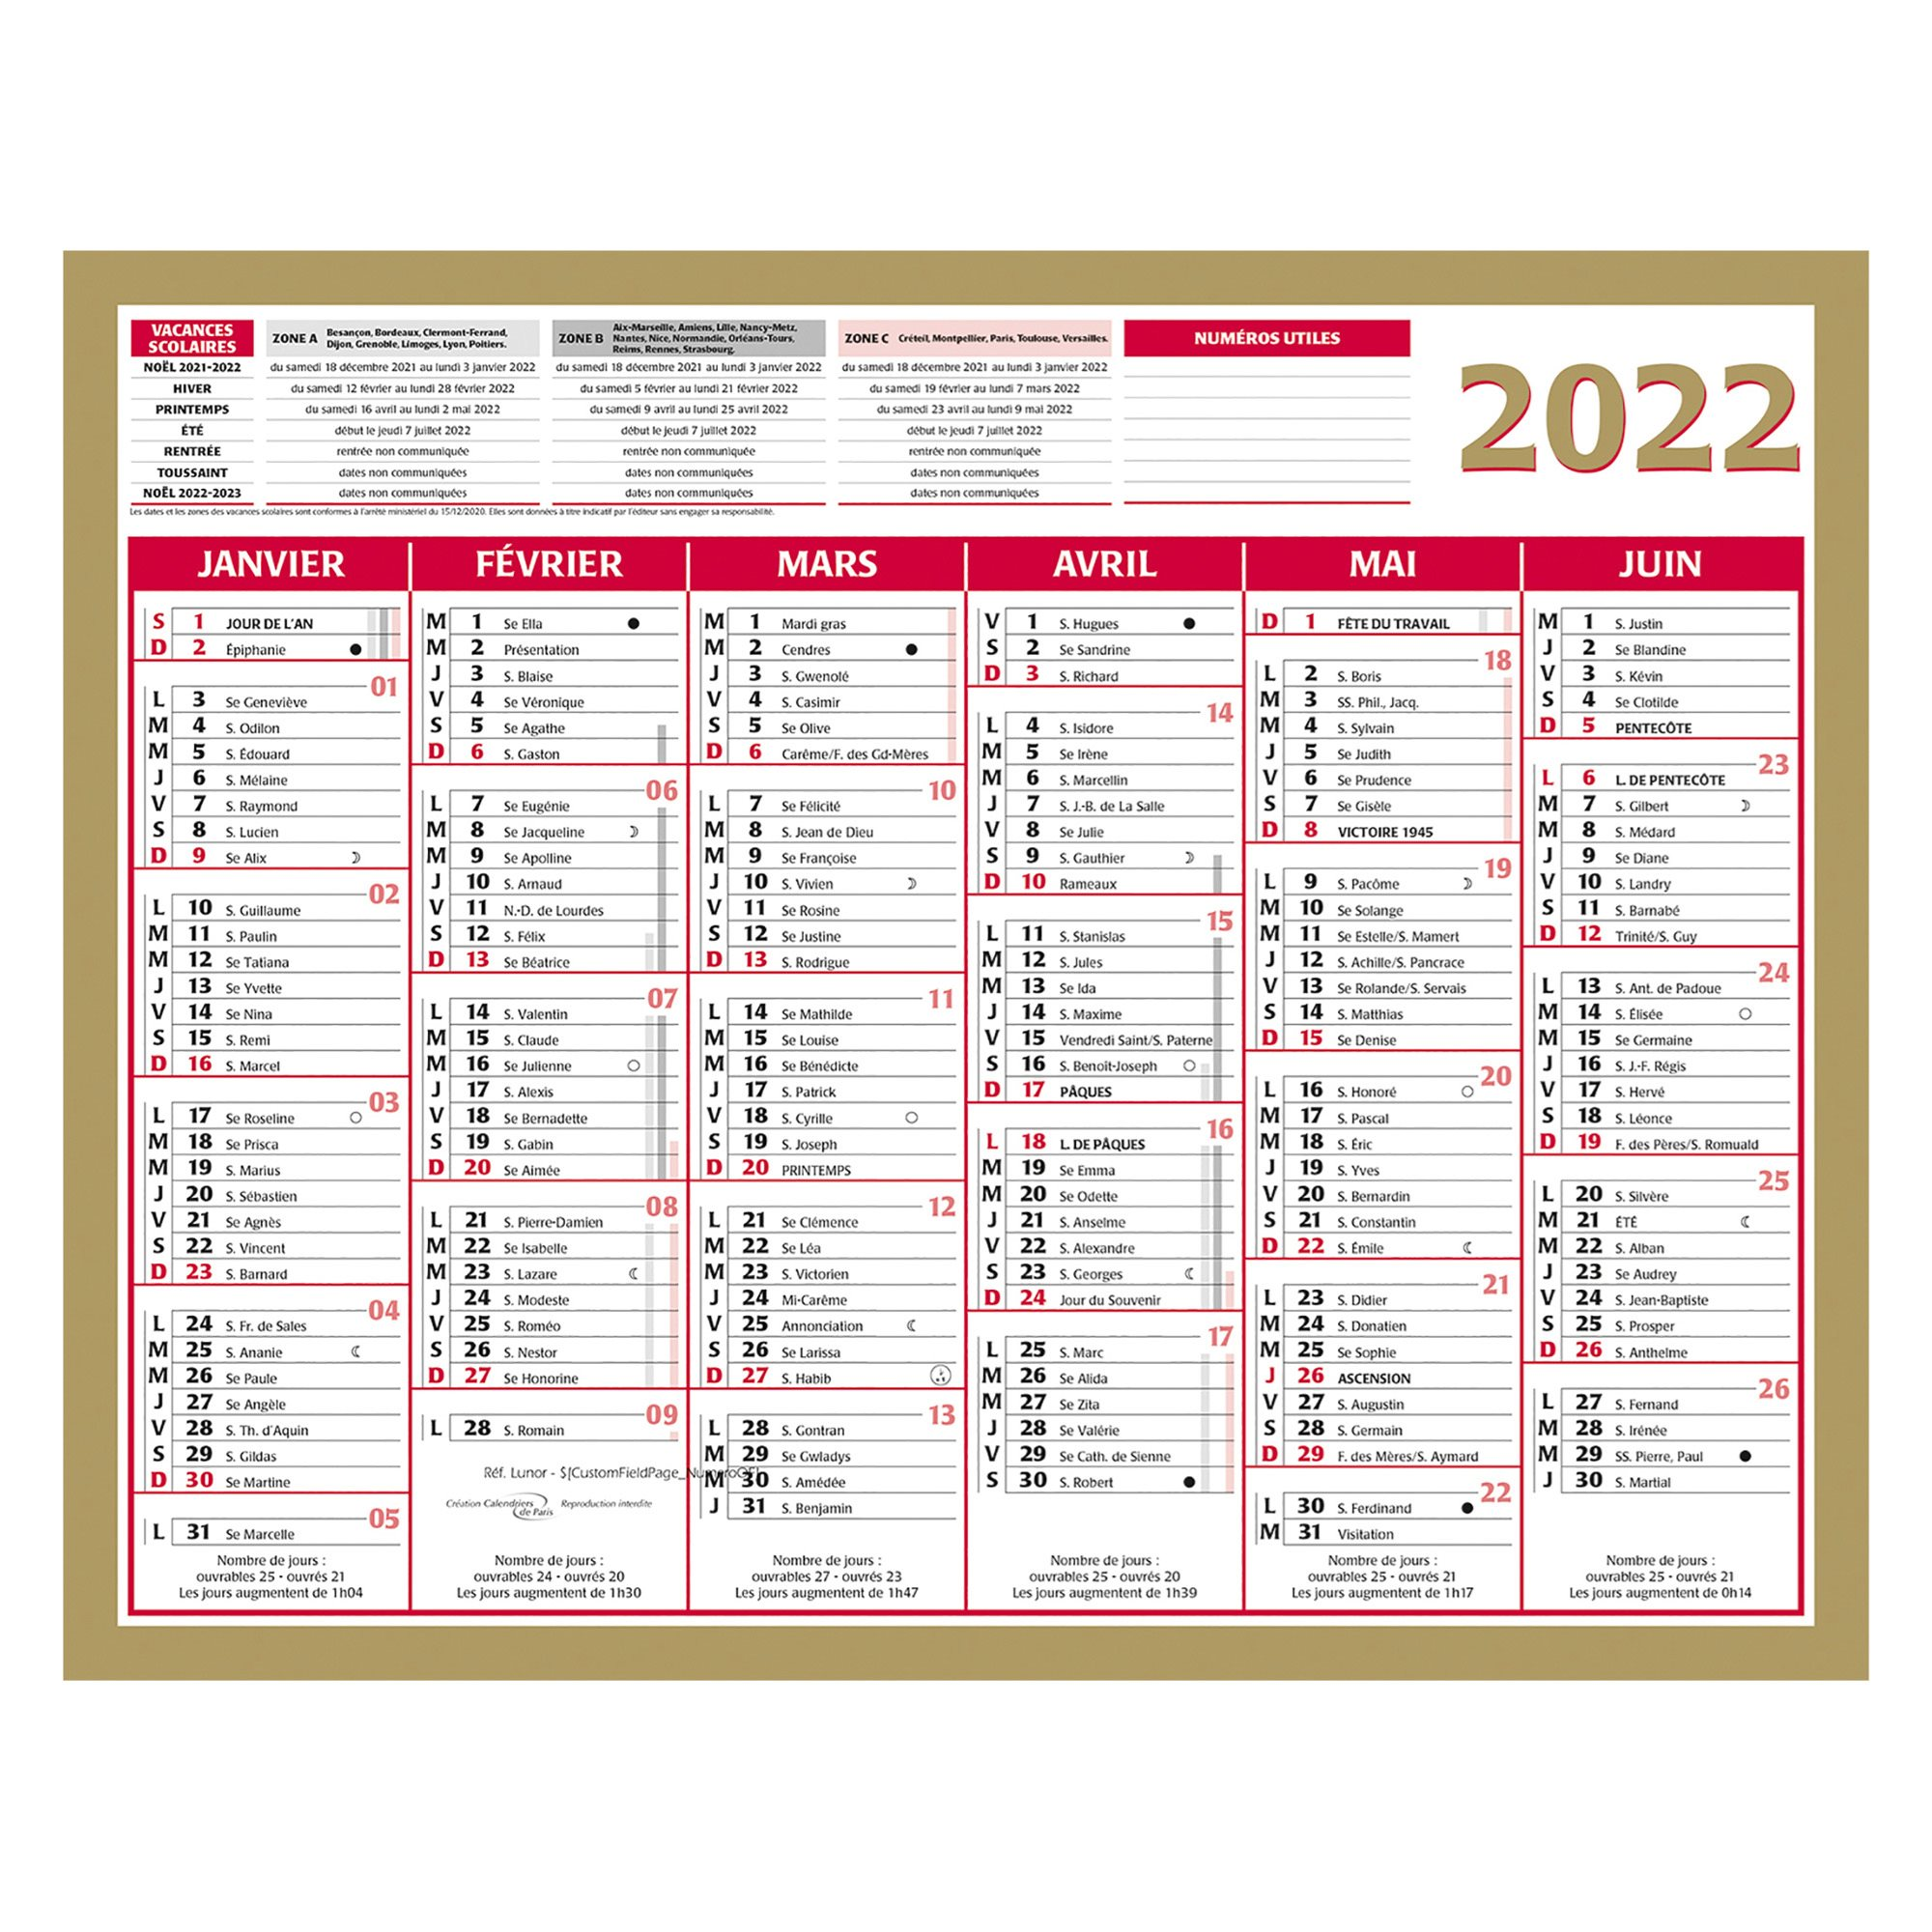 Calendrier 2020 Semestriel.Calendrier Semestriel Mural 2020 Or 21 X 26 5 Cm